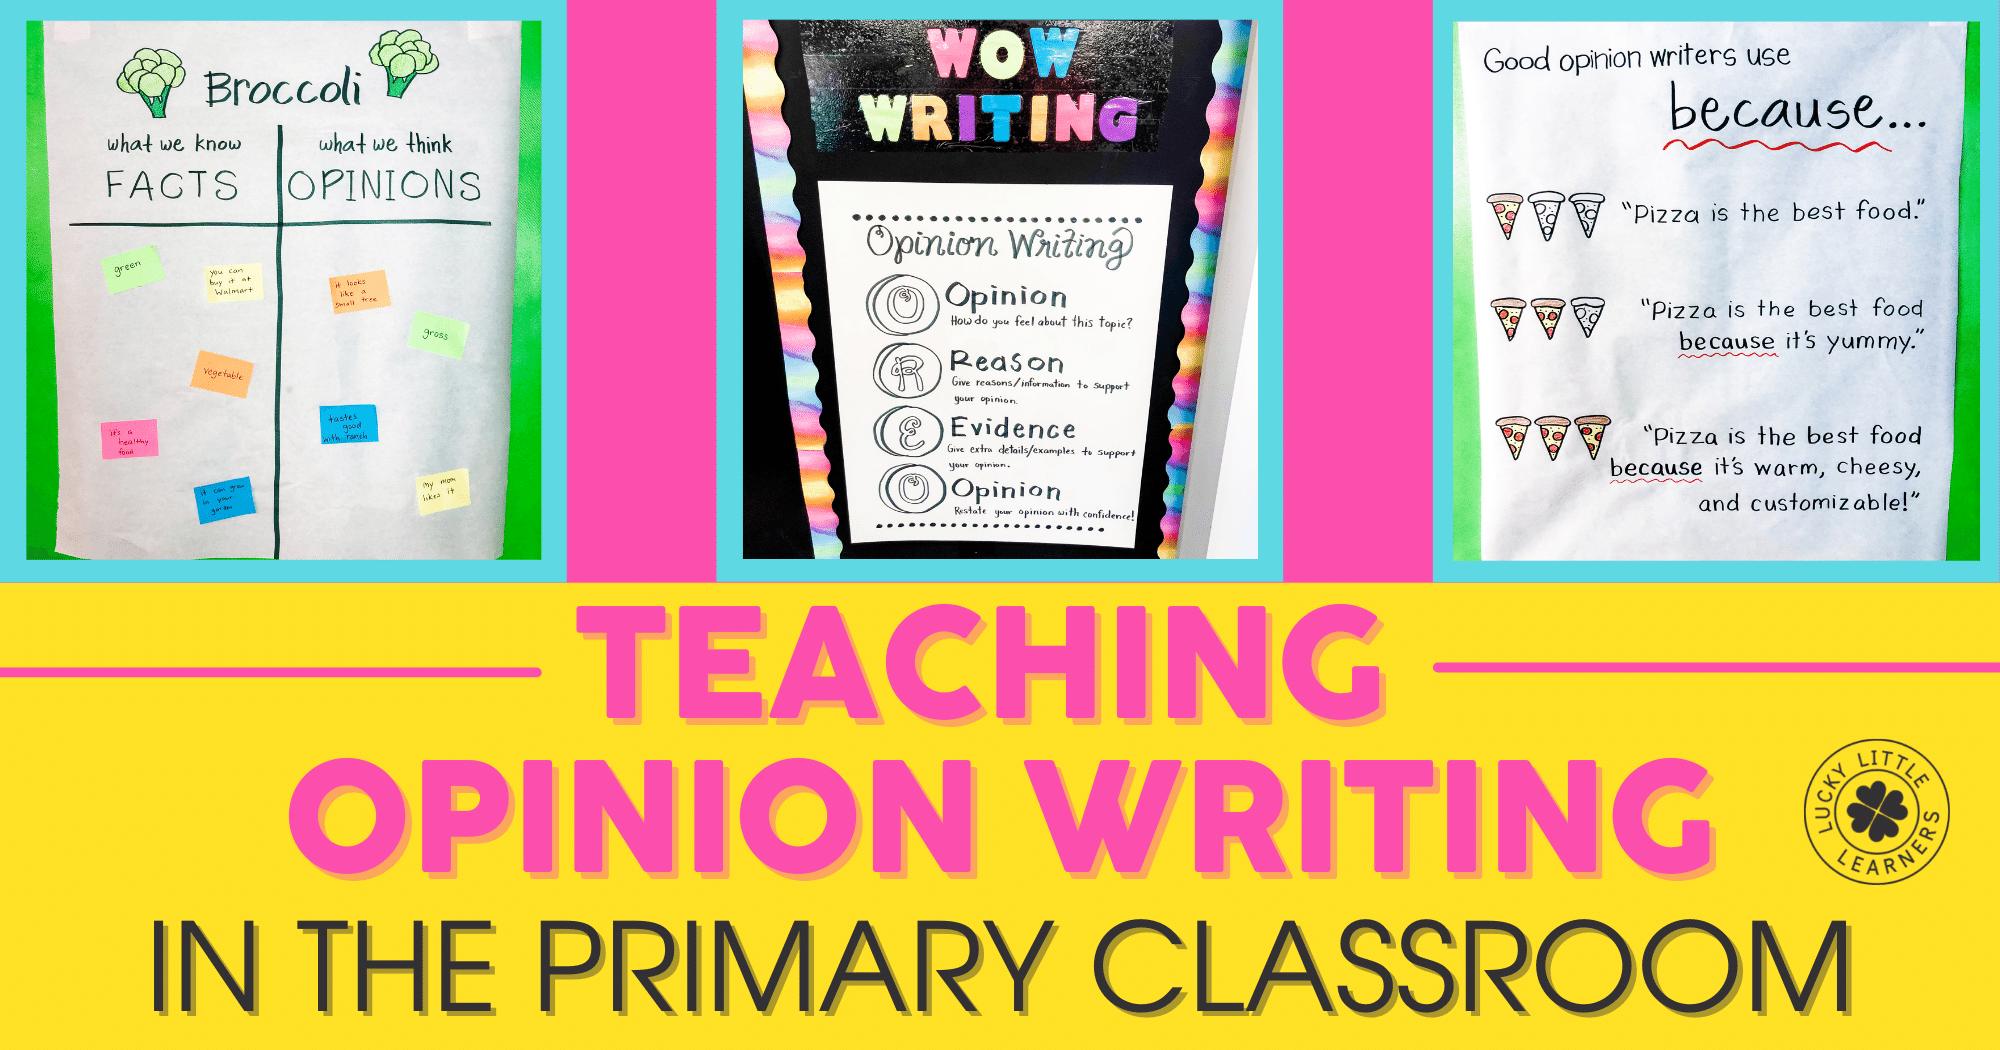 Teaching Opinion Writing in the Primary Classroom